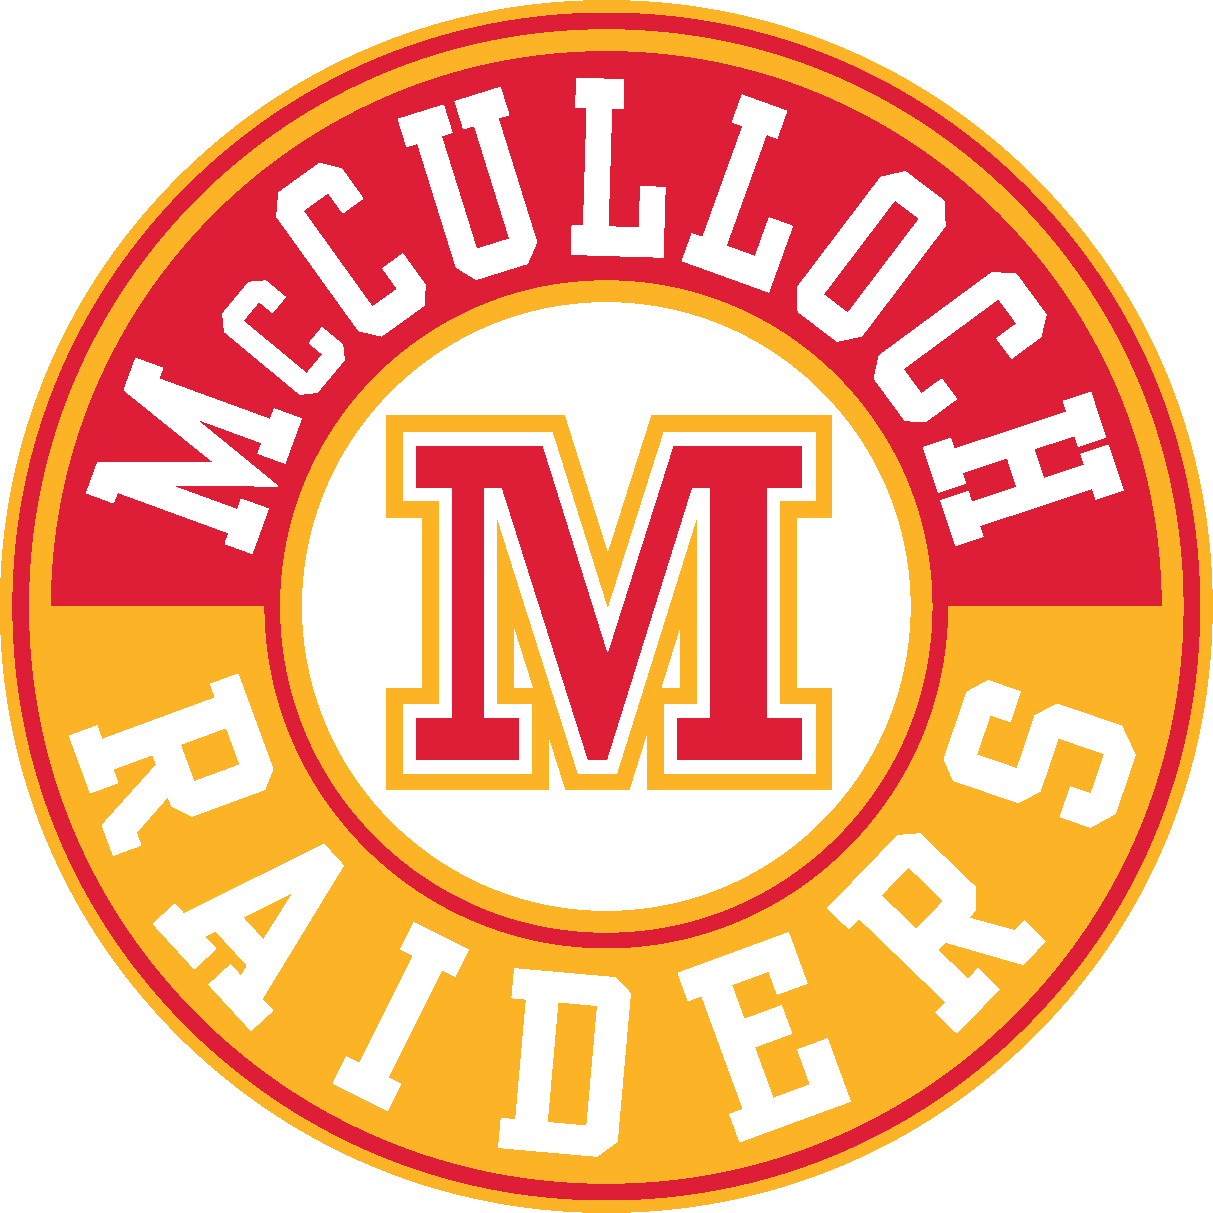 McCulloch Raiders letter crest logo